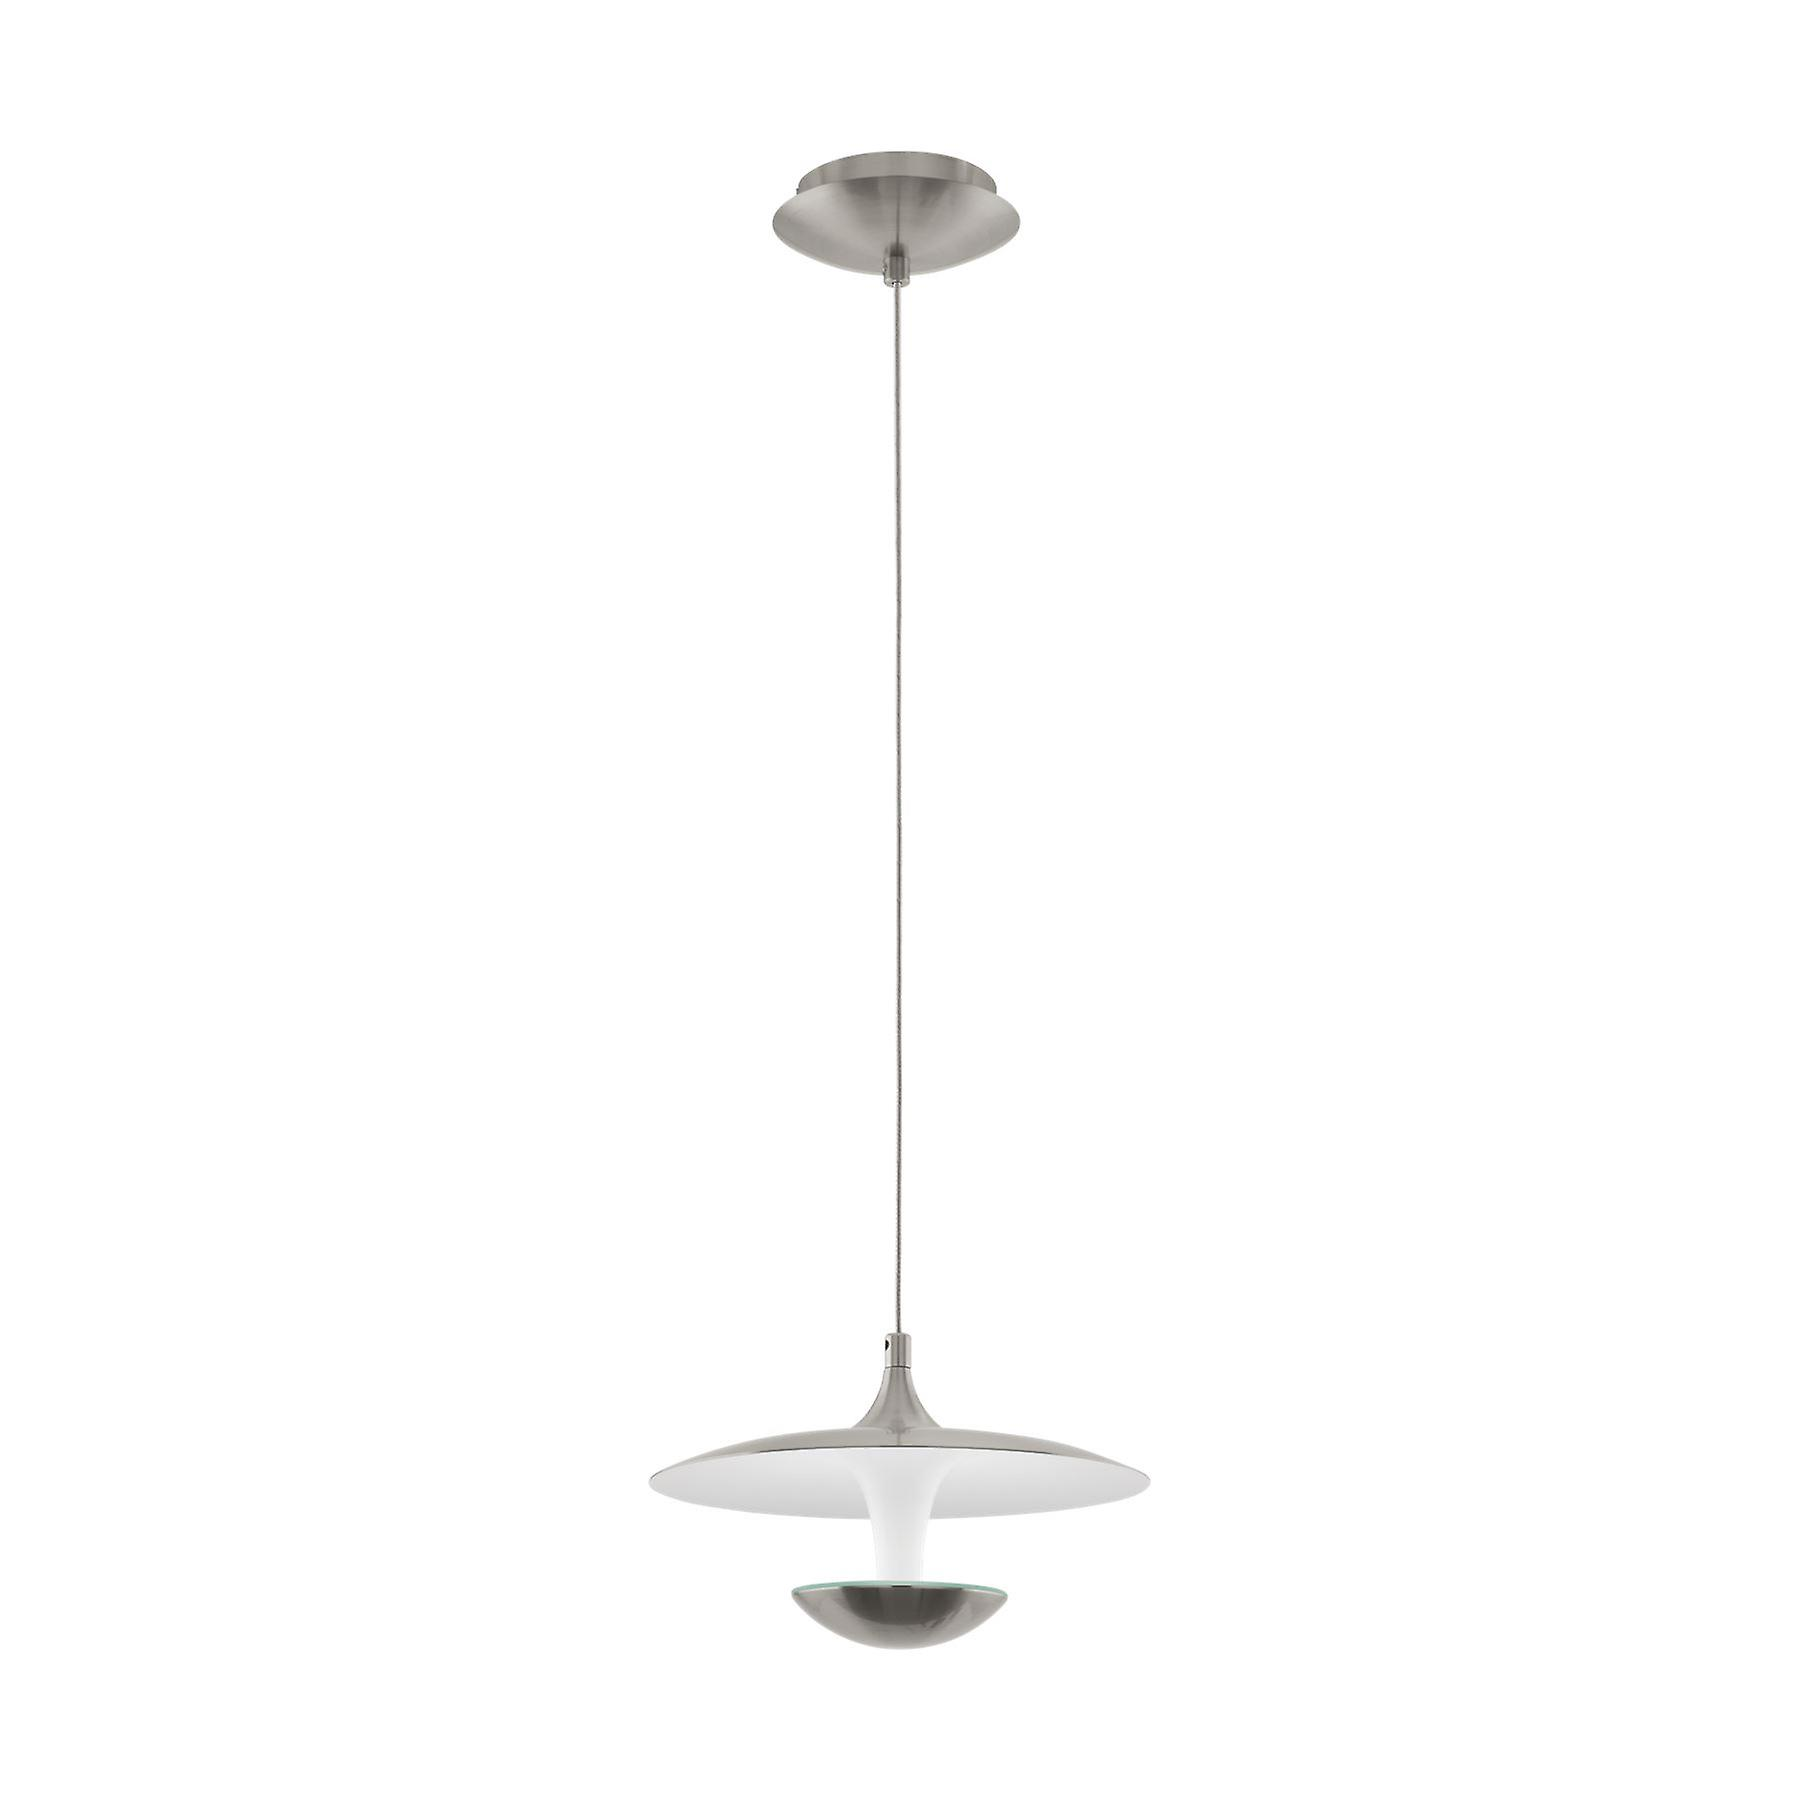 Eglo - Tornja 1 lumière LED pendentif Ceiling lumière Satin Nickel and Shiny blanc EG95955